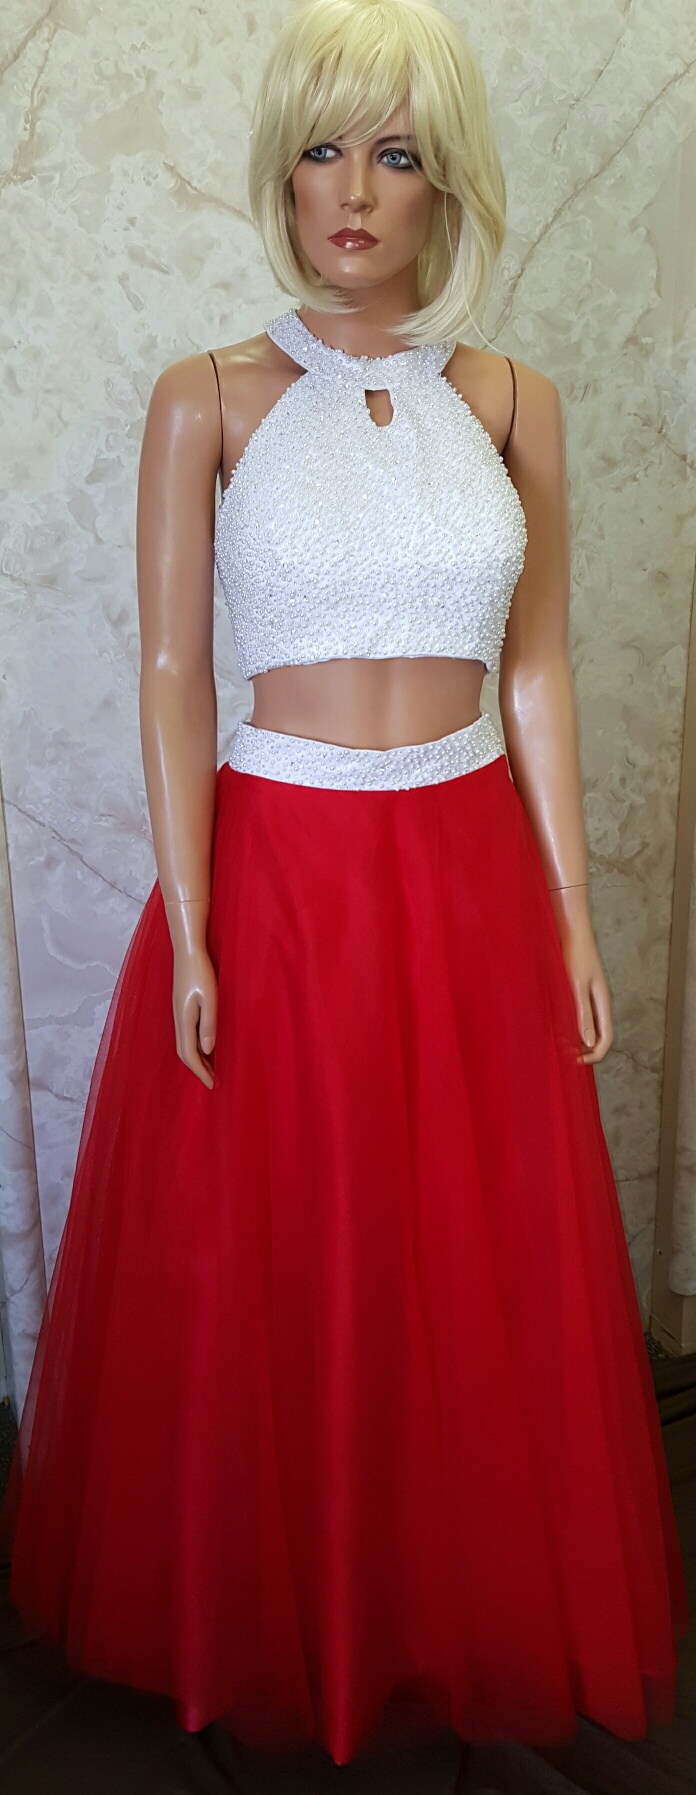 red and white crop top prom dress